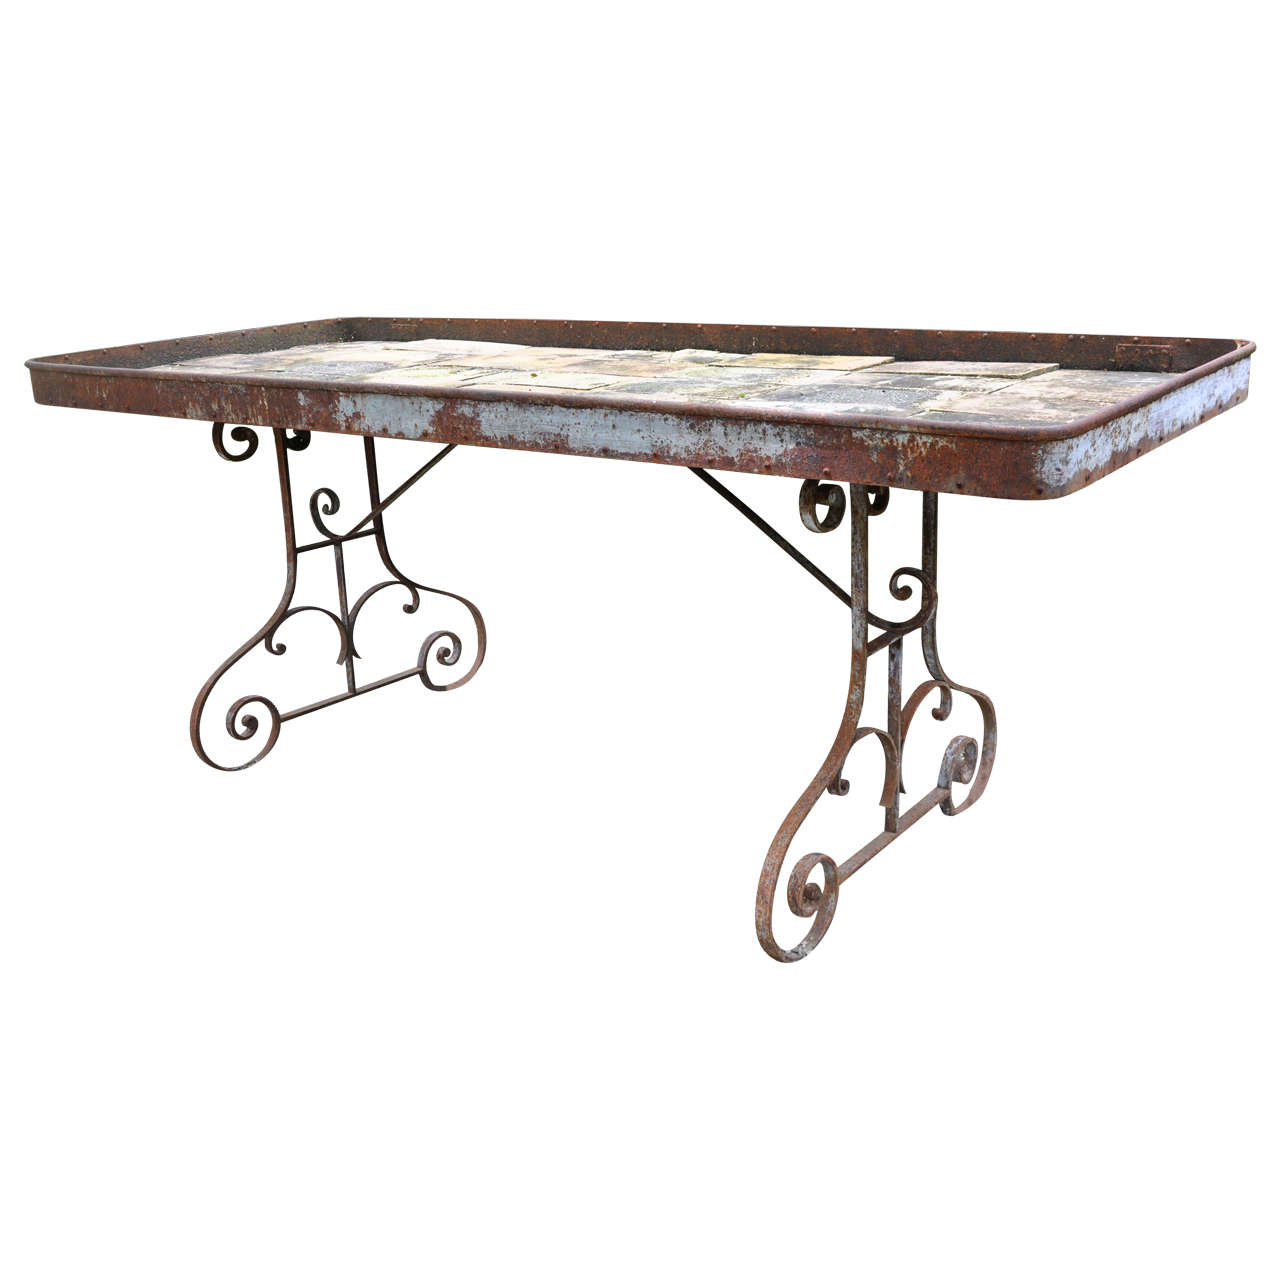 Garden wrought iron work table at 1stdibs for Furniture work table